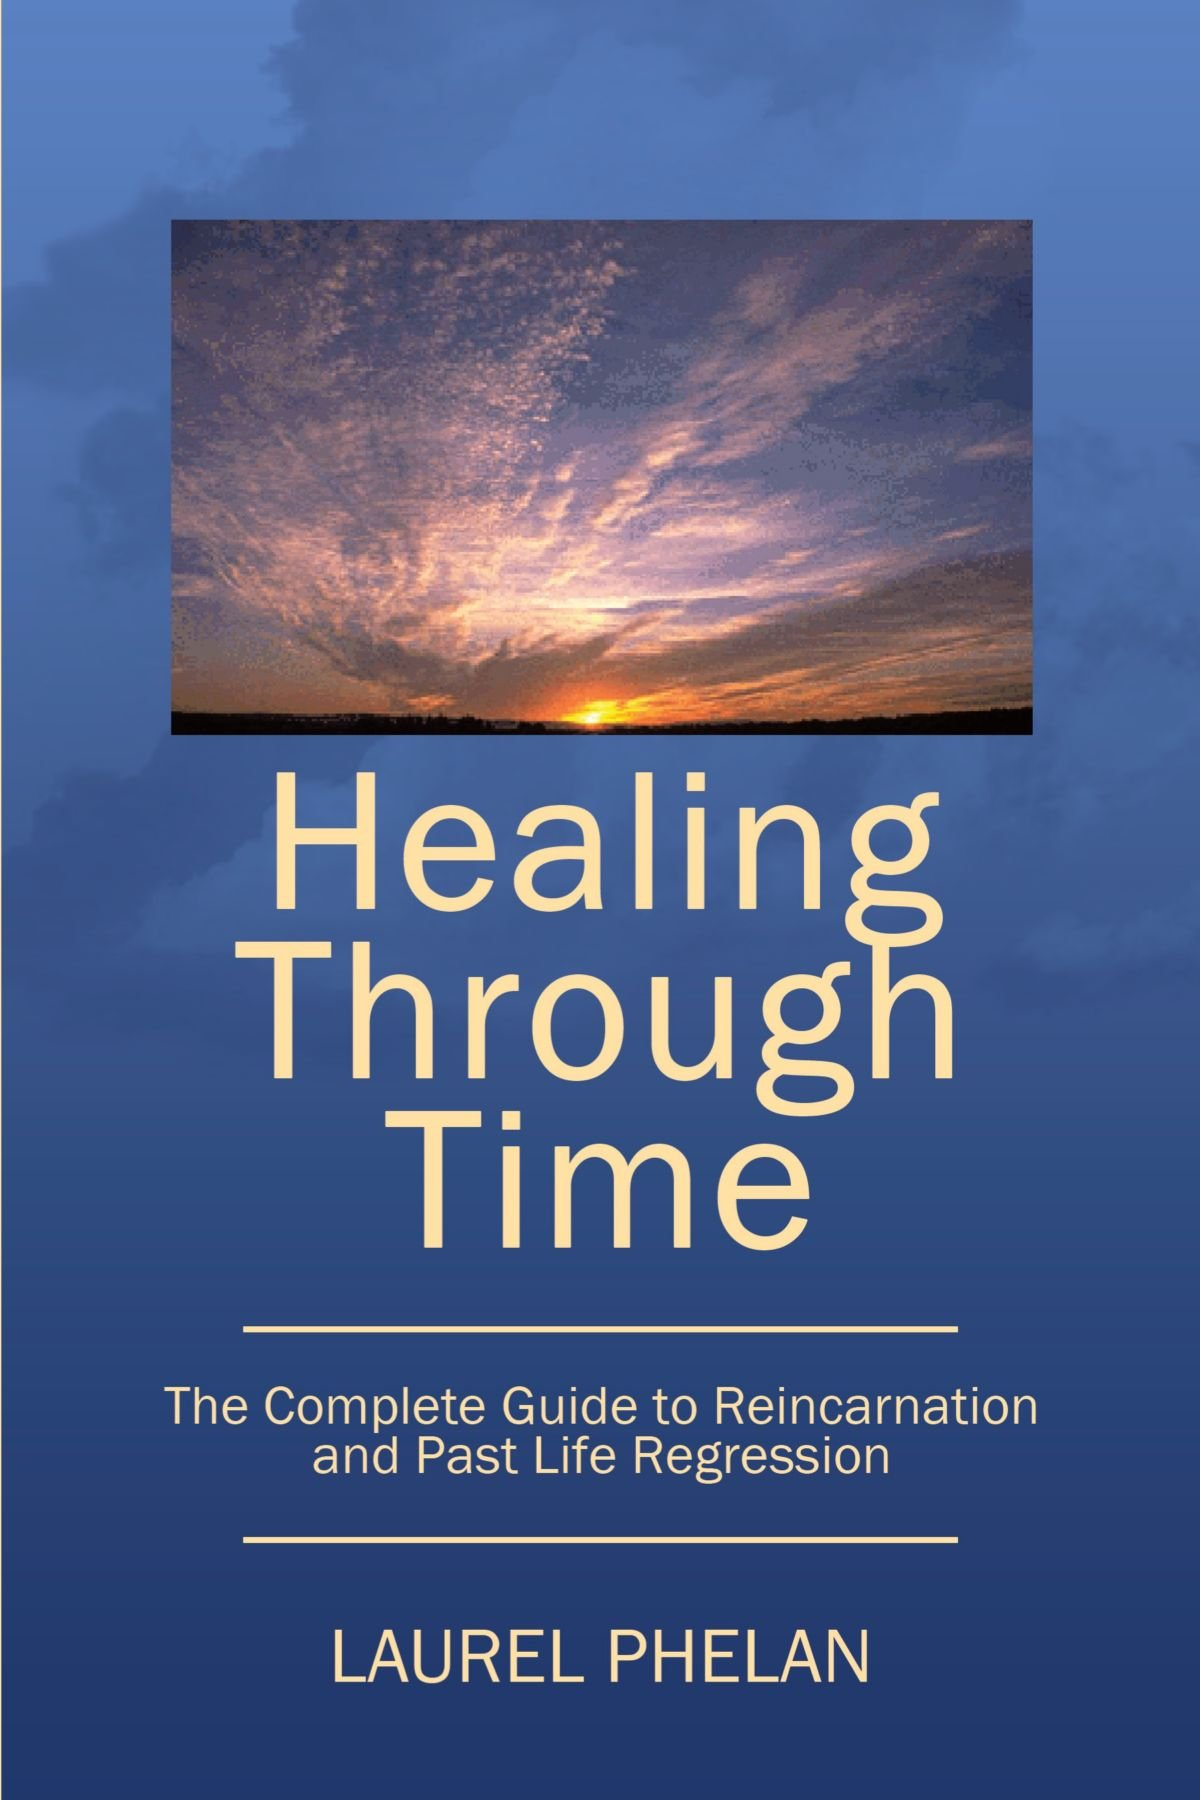 Download Healing Through Time: The Complete Guide to Reincarnation and Past Life Regression PDF